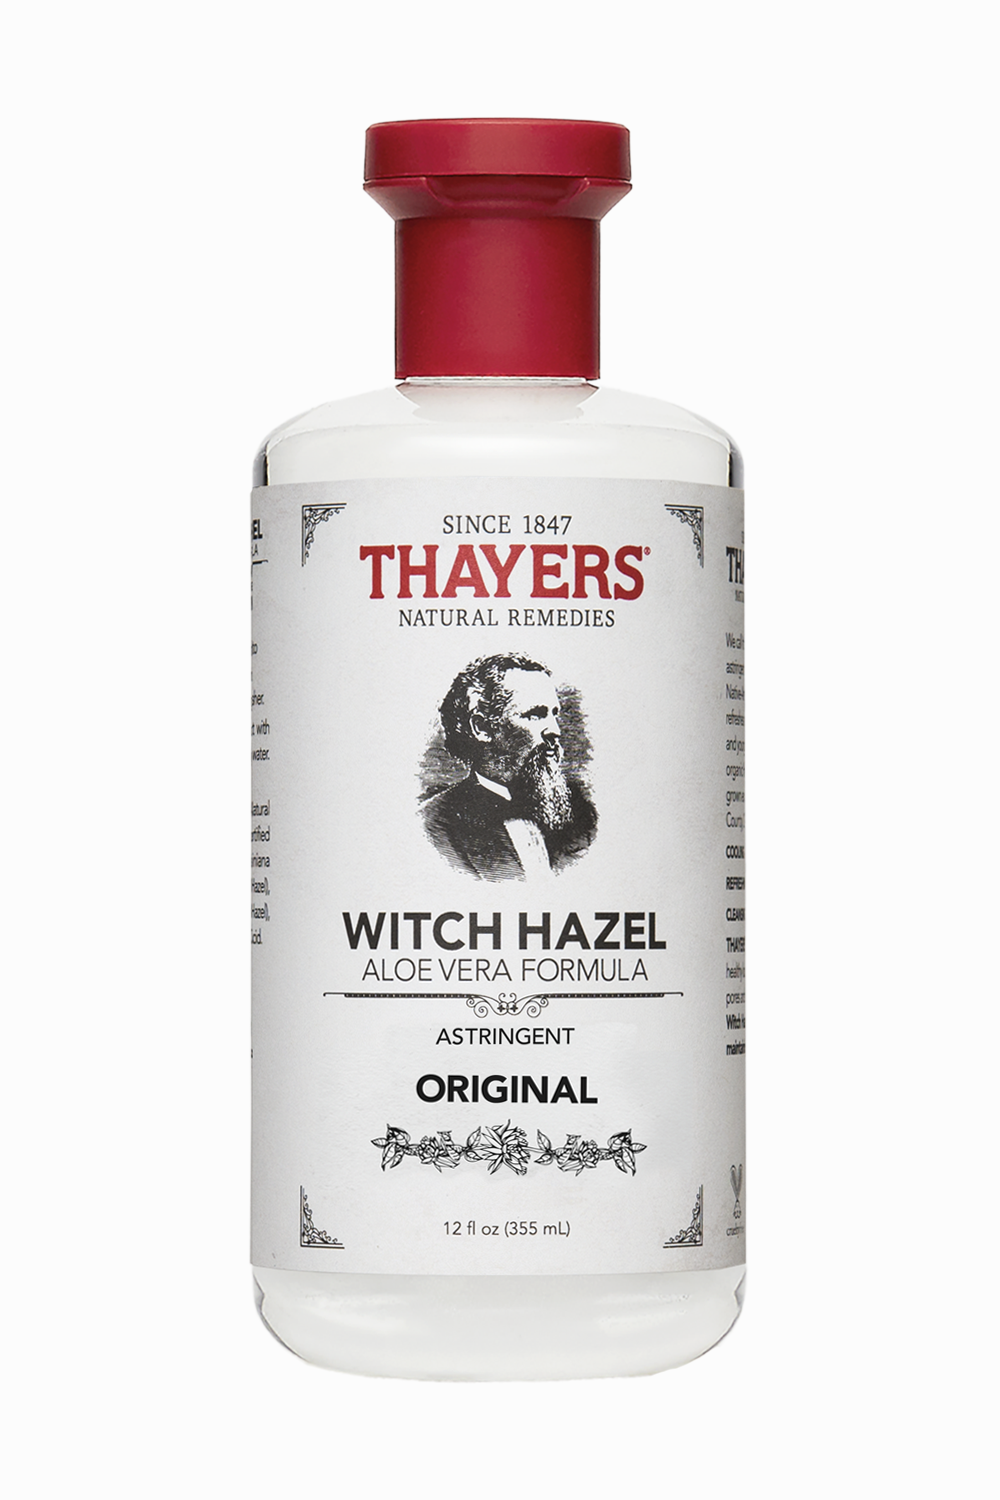 Thayers Original Witch Hazel Astringent